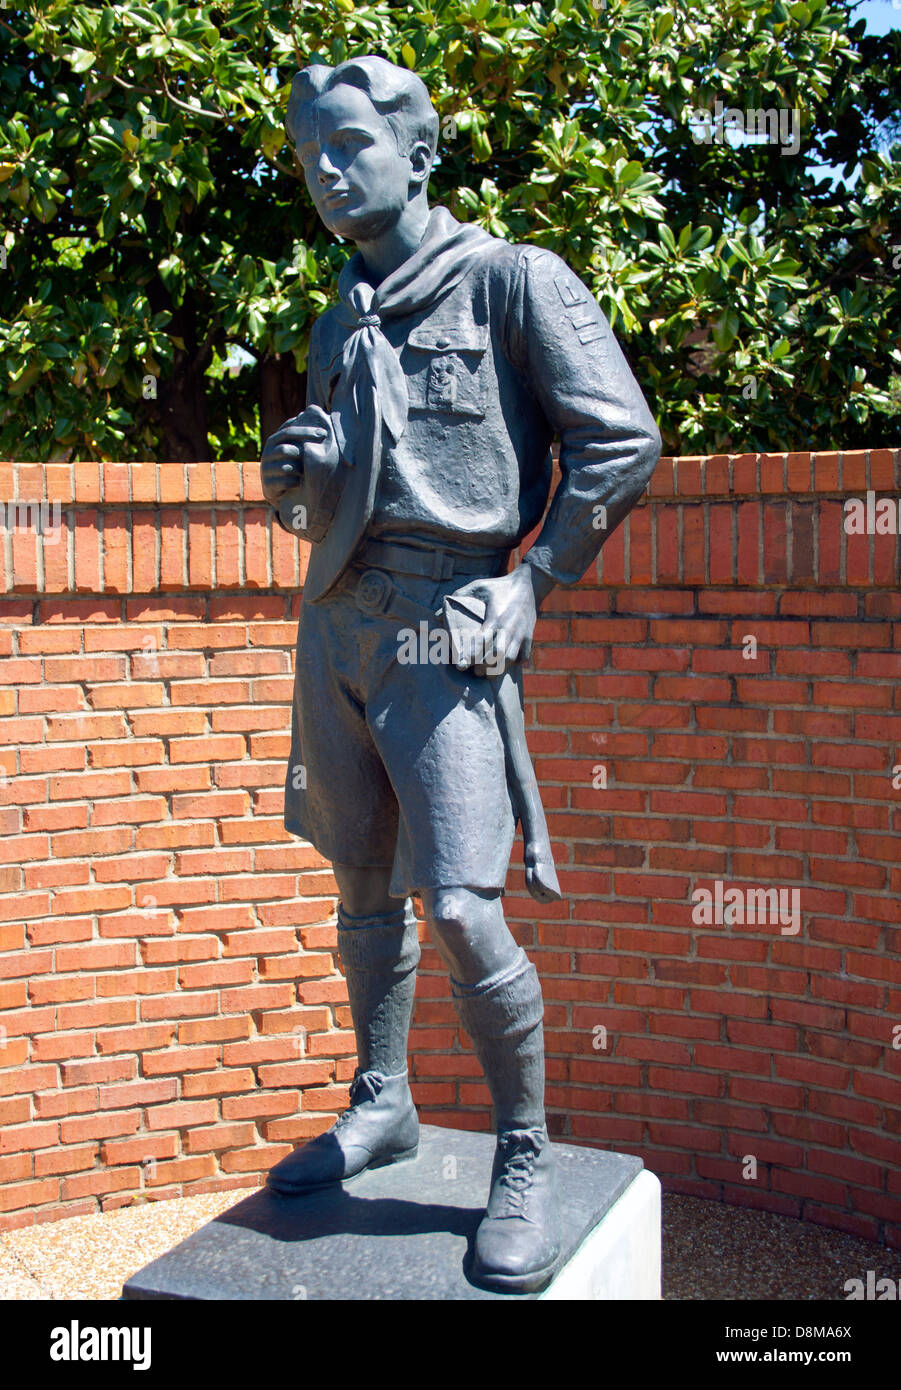 Statue at the Boy Scout Headquarters in Nashville Tennessee - Stock Image